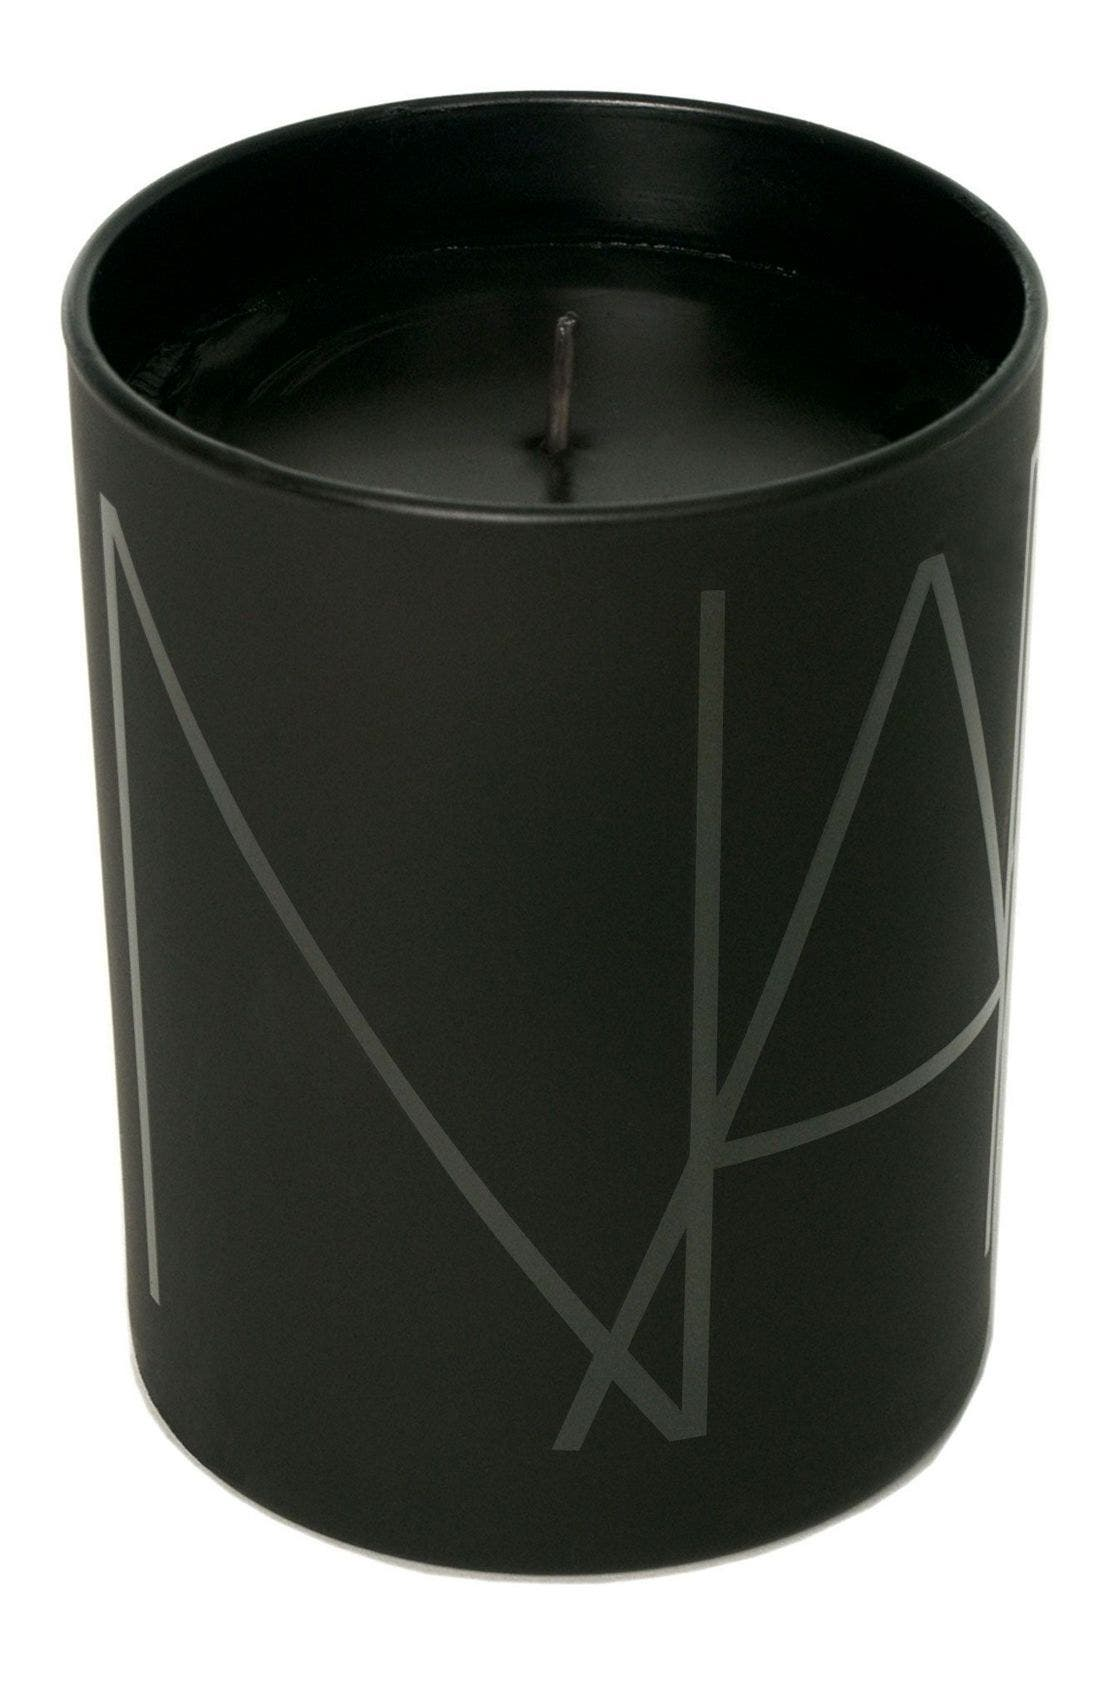 NARS 'Acapulco' Candle